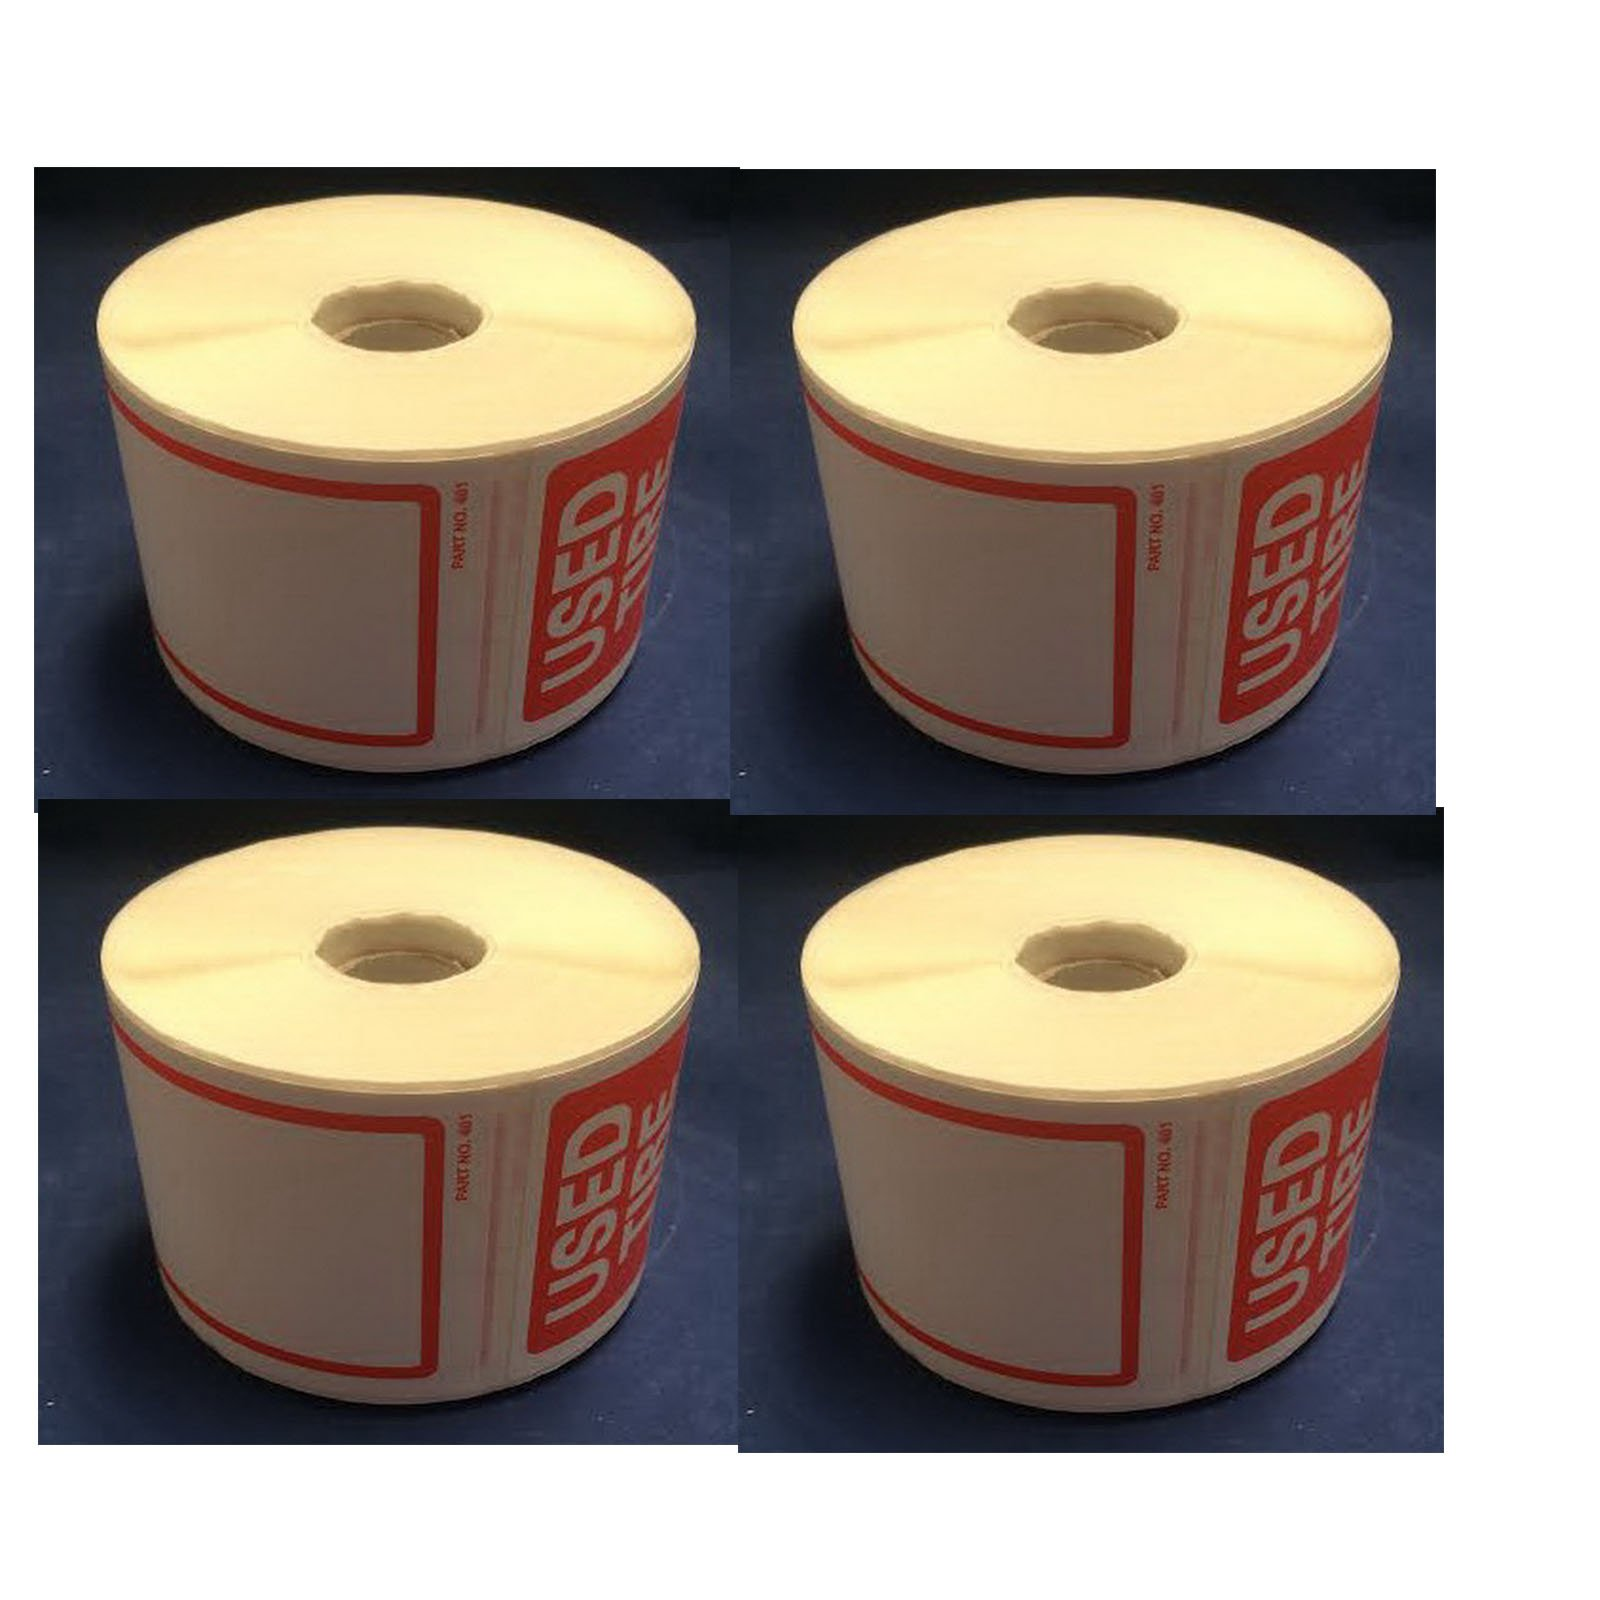 Tire Label - Used Tire 4 Rolls of 250 Stickers Total 1000 Stickers Size 6'' X 2-1/2'' (150mm X 63.50mm)